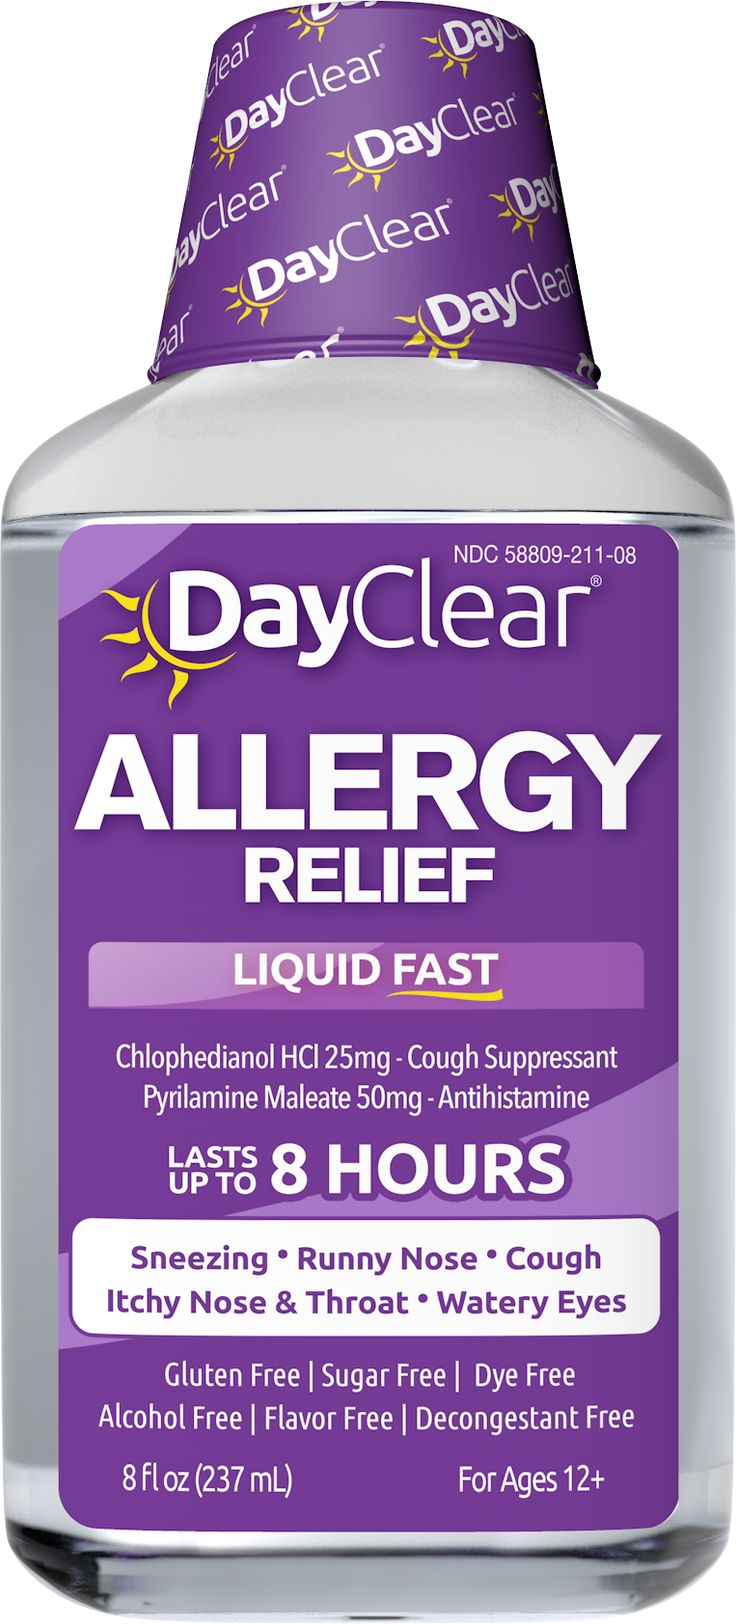 DayClear® Allergy Relief delivers powerful relief for your mild to severe allergy symptoms. This multi-symptom formula works liquid fast to soothe the tickle in your throat and relieve irritating